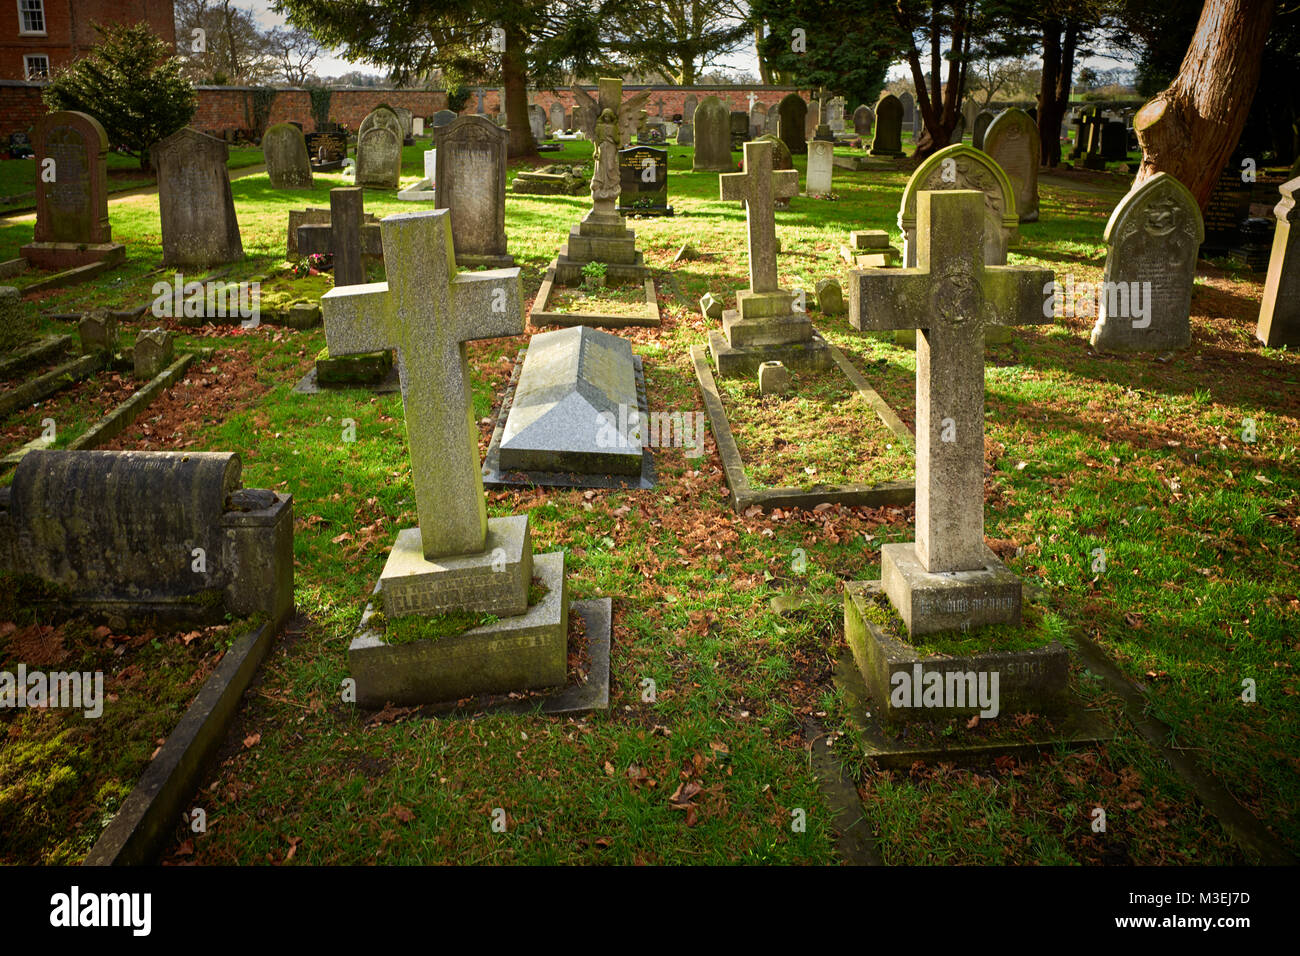 Tombstones in St Mary's churchyard in Acton, Cheshire - Stock Image